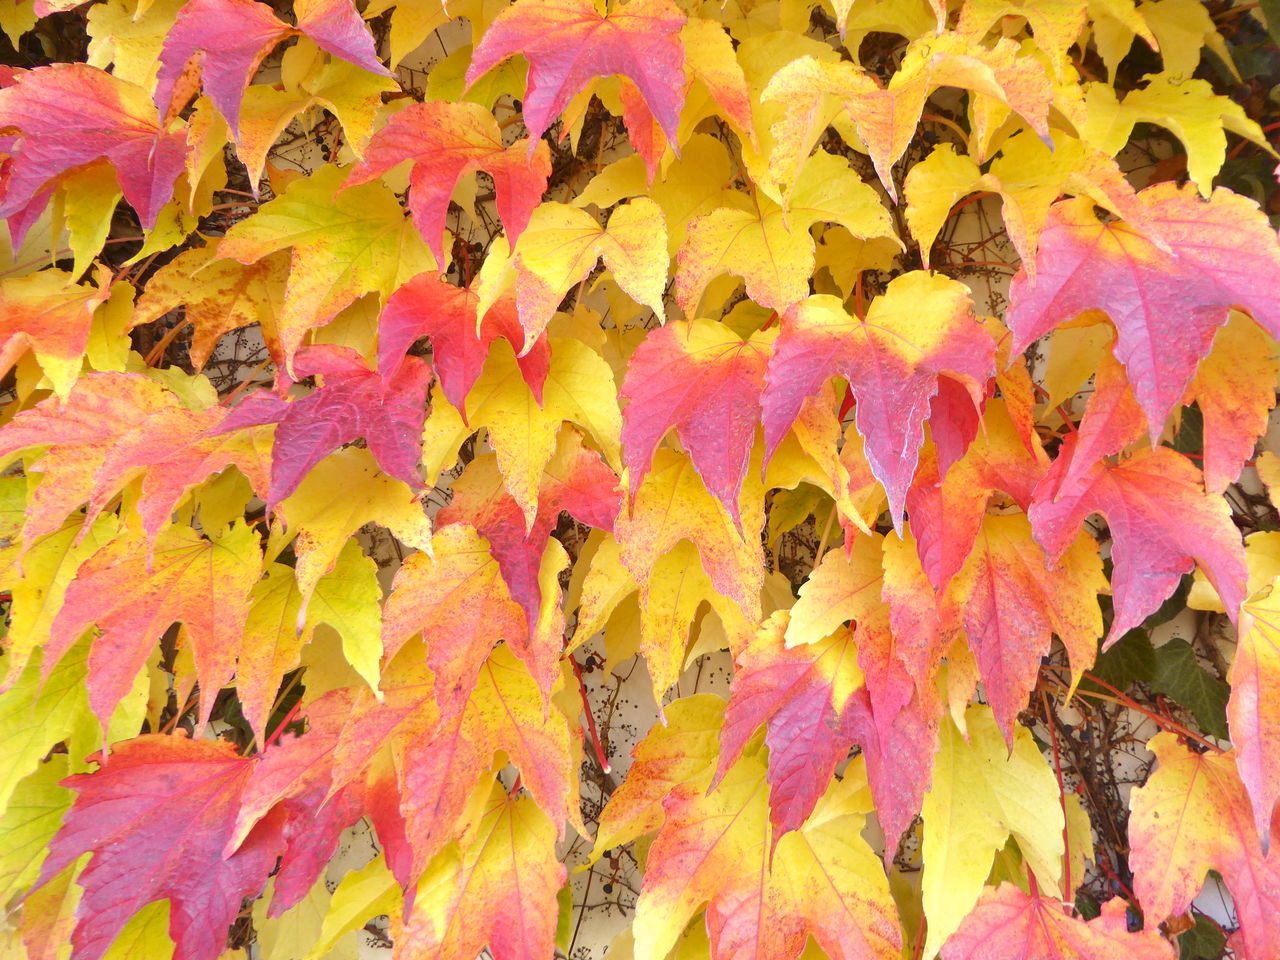 autumn, leaf, change, outdoors, nature, fragility, day, close-up, full frame, maple leaf, backgrounds, no people, growth, beauty in nature, maple, yellow, tree